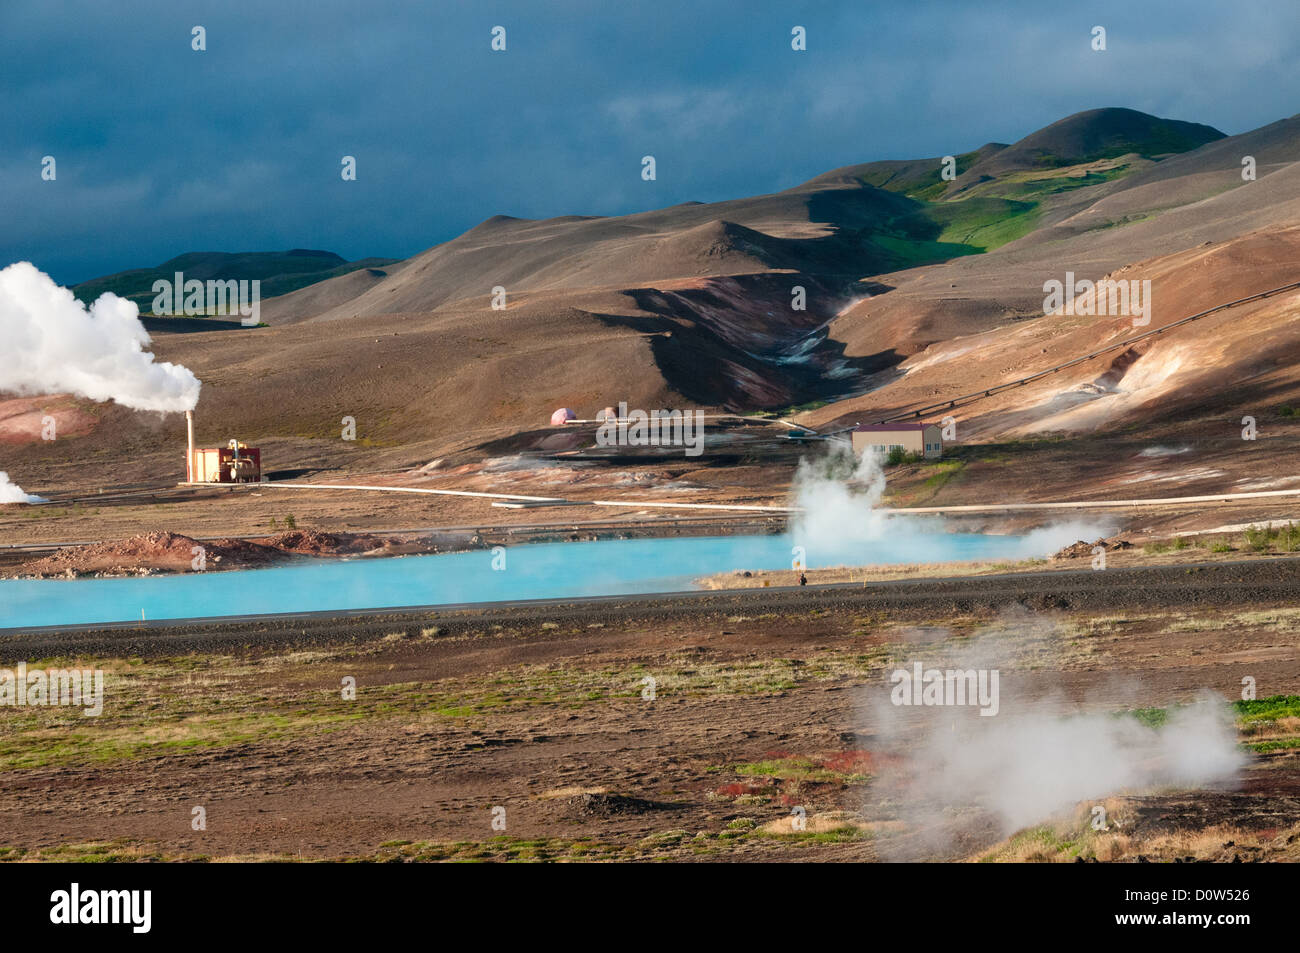 Geyser, volcanism, Geothermics, hot springs, sources, Iceland, Europe, place of interest, landmark, structure, water, - Stock Image